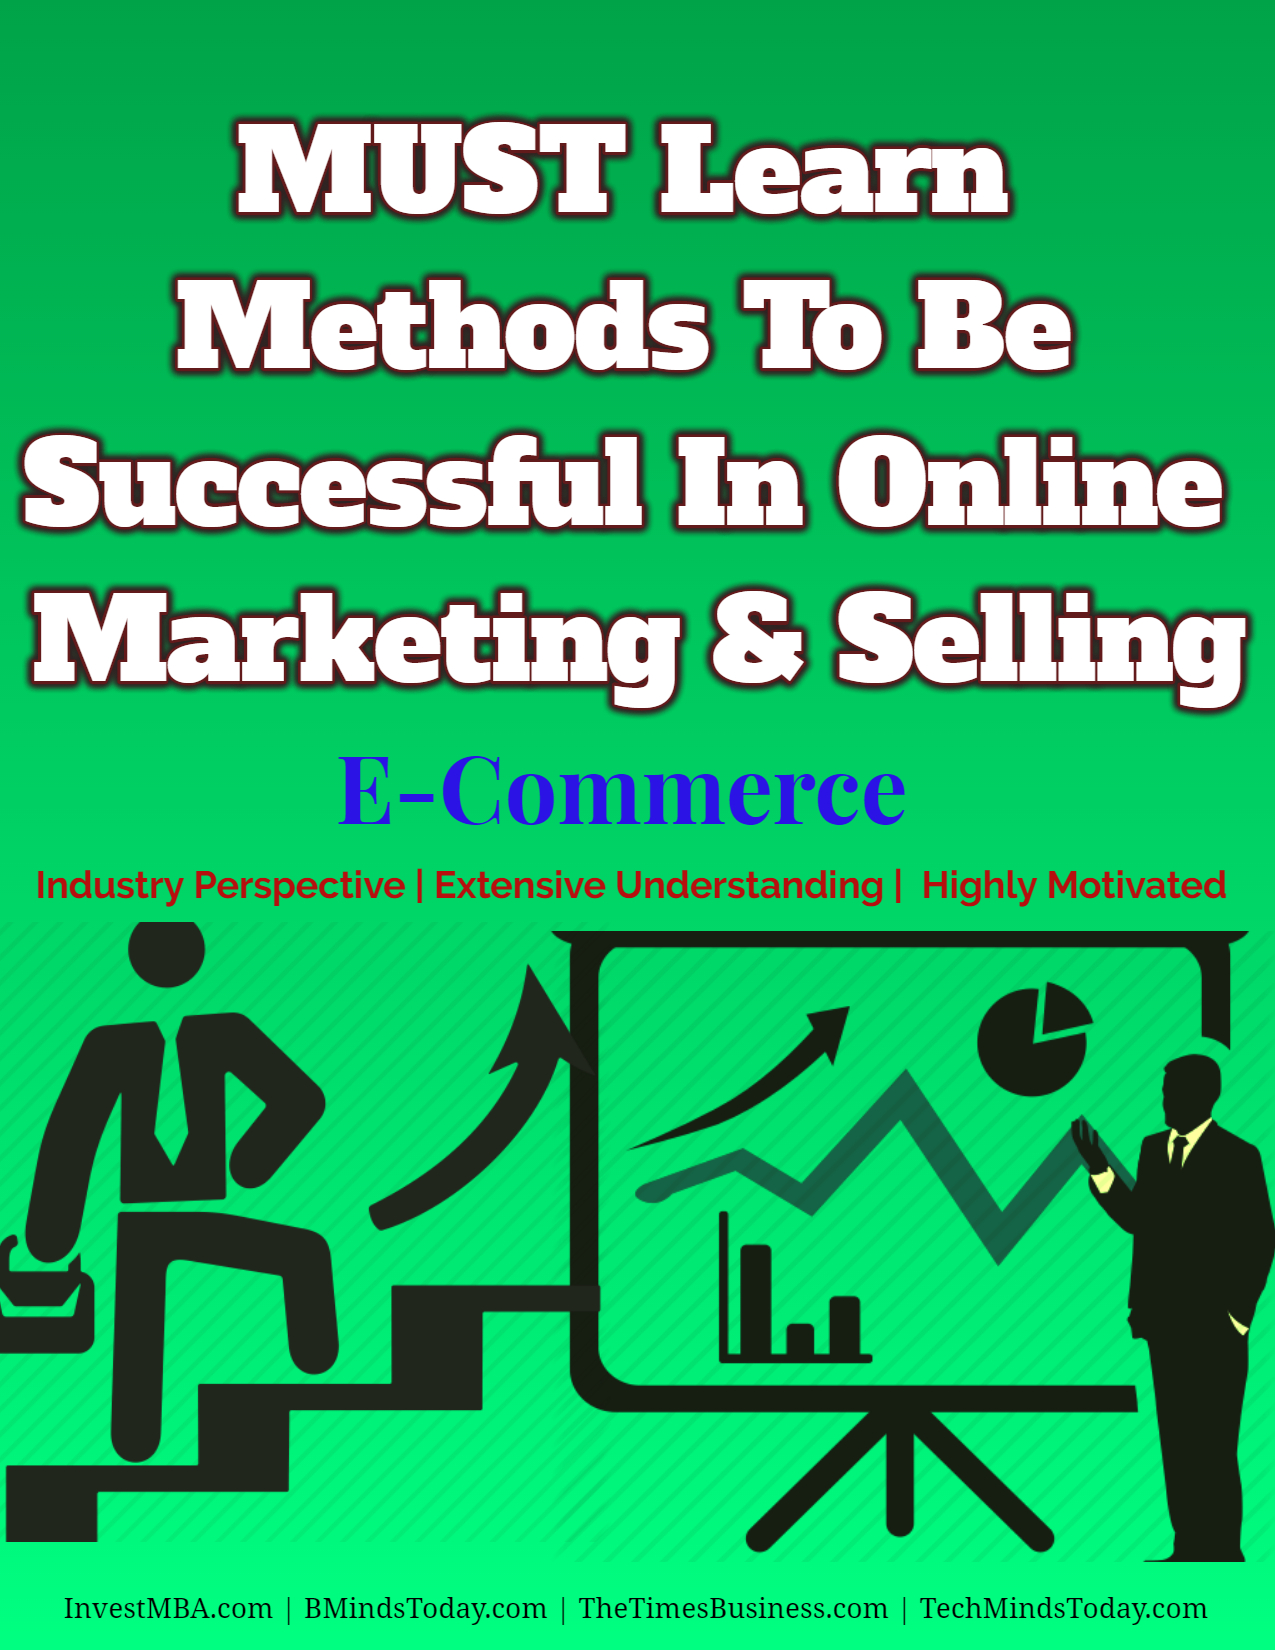 MUST Learn Methods To Be Successful In Online Marketing & Selling online MUST Learn Methods To Be Successful In Online Marketing & Selling MUST Learn Methods To Be Successful In Online Marketing Selling